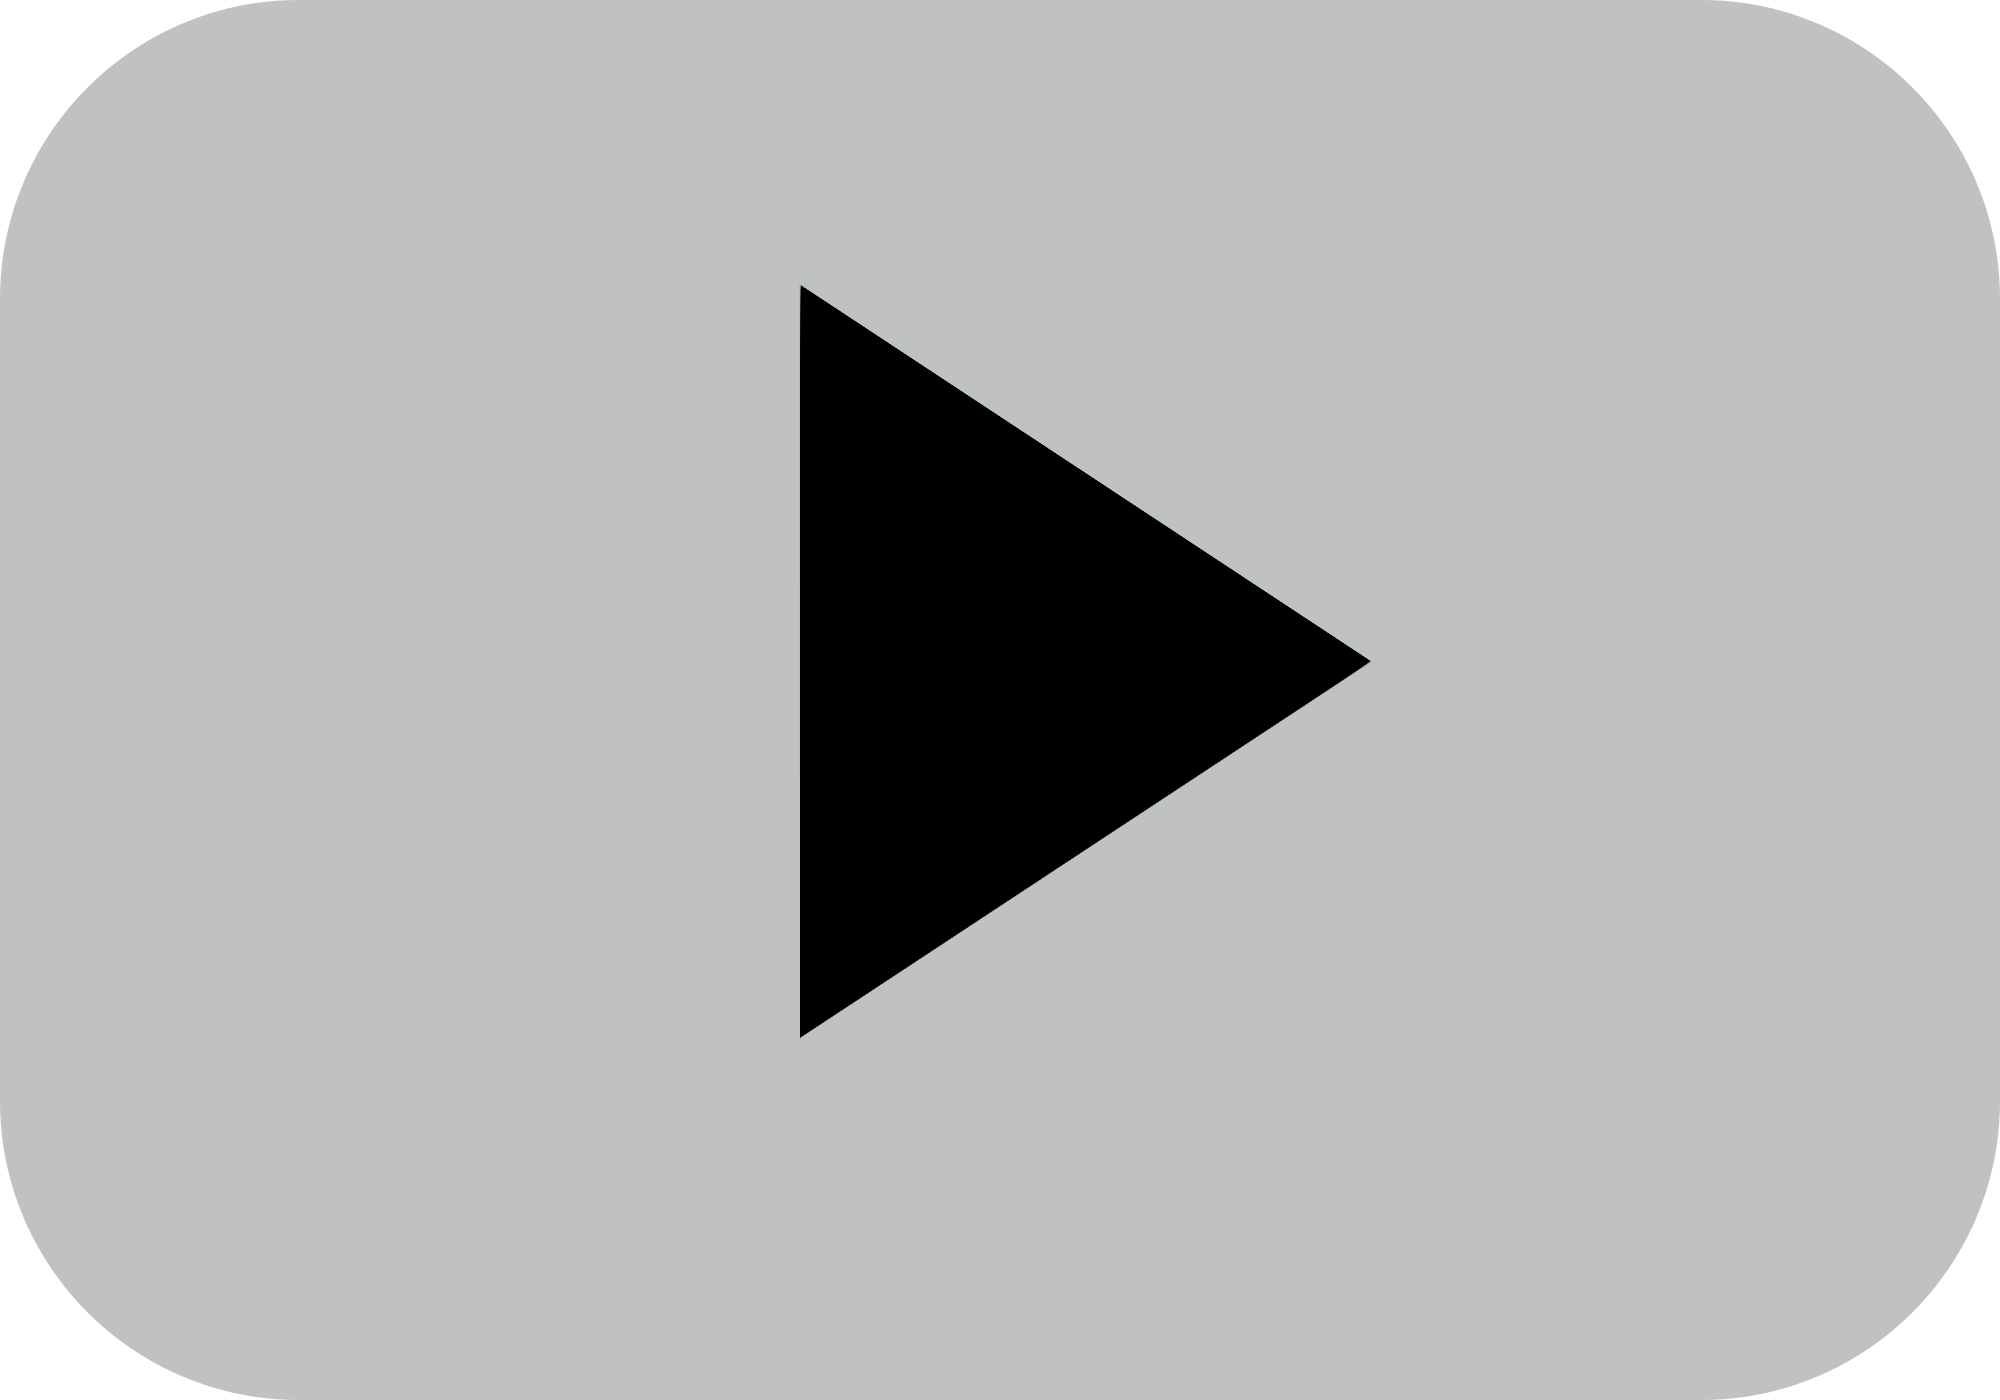 Play Button PNG - 173989